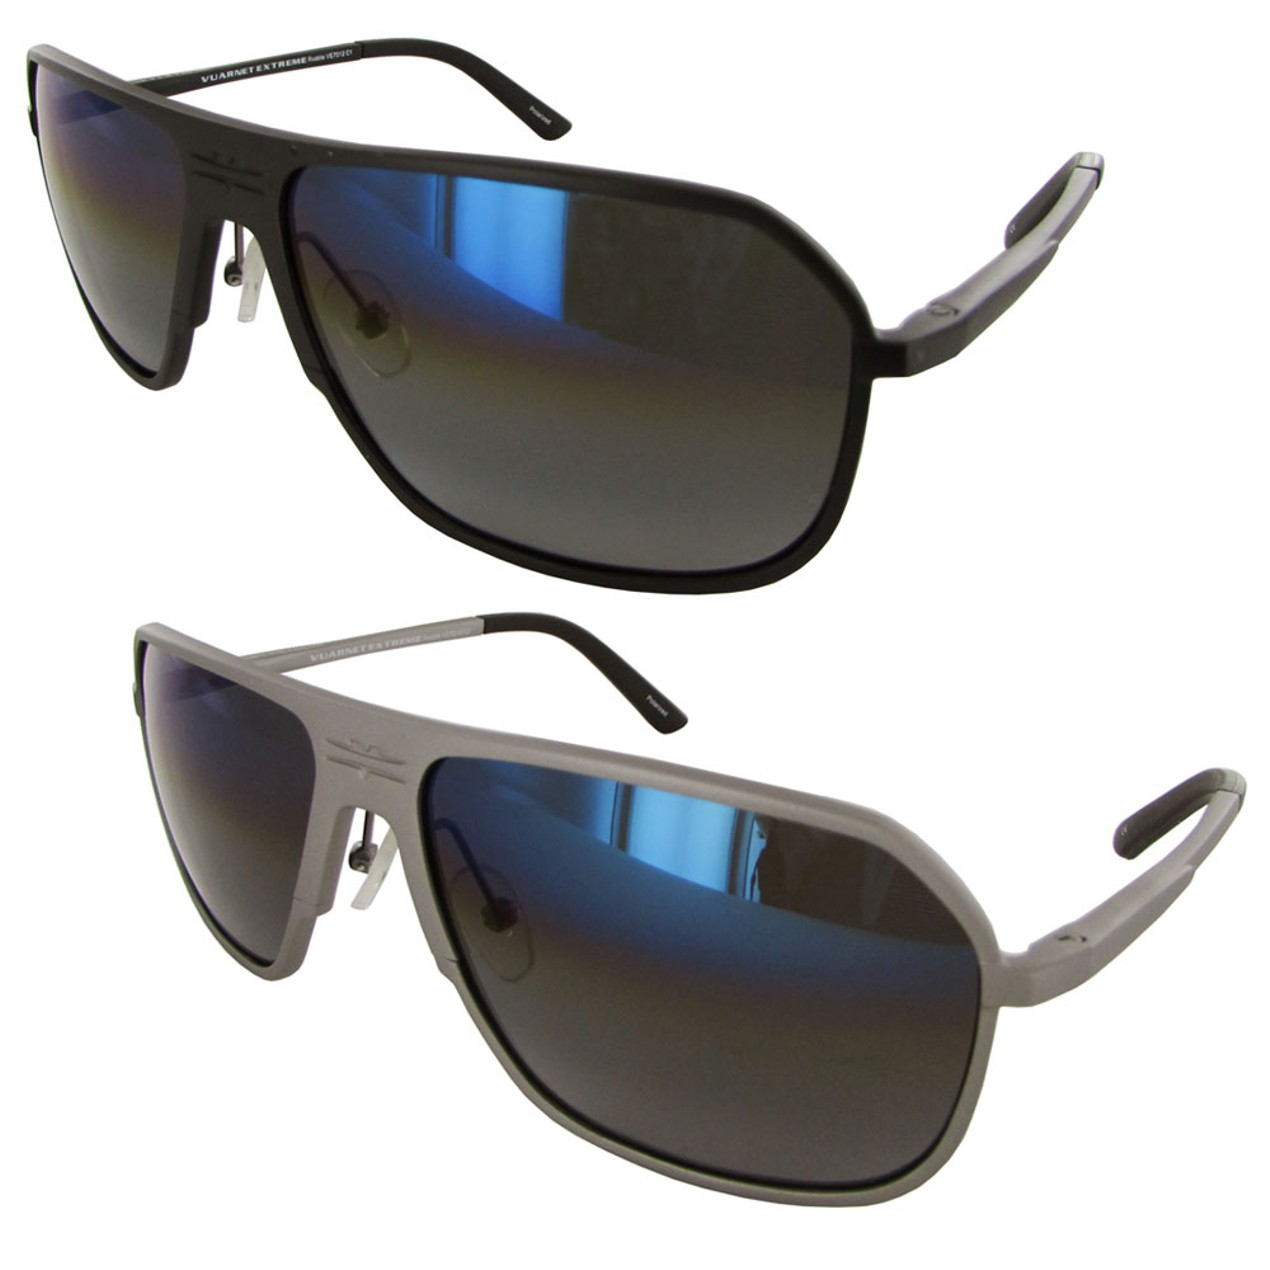 07970742db Vuarnet Extreme Unisex VE 7012 Square Polarized Aviator Sunglasses ...